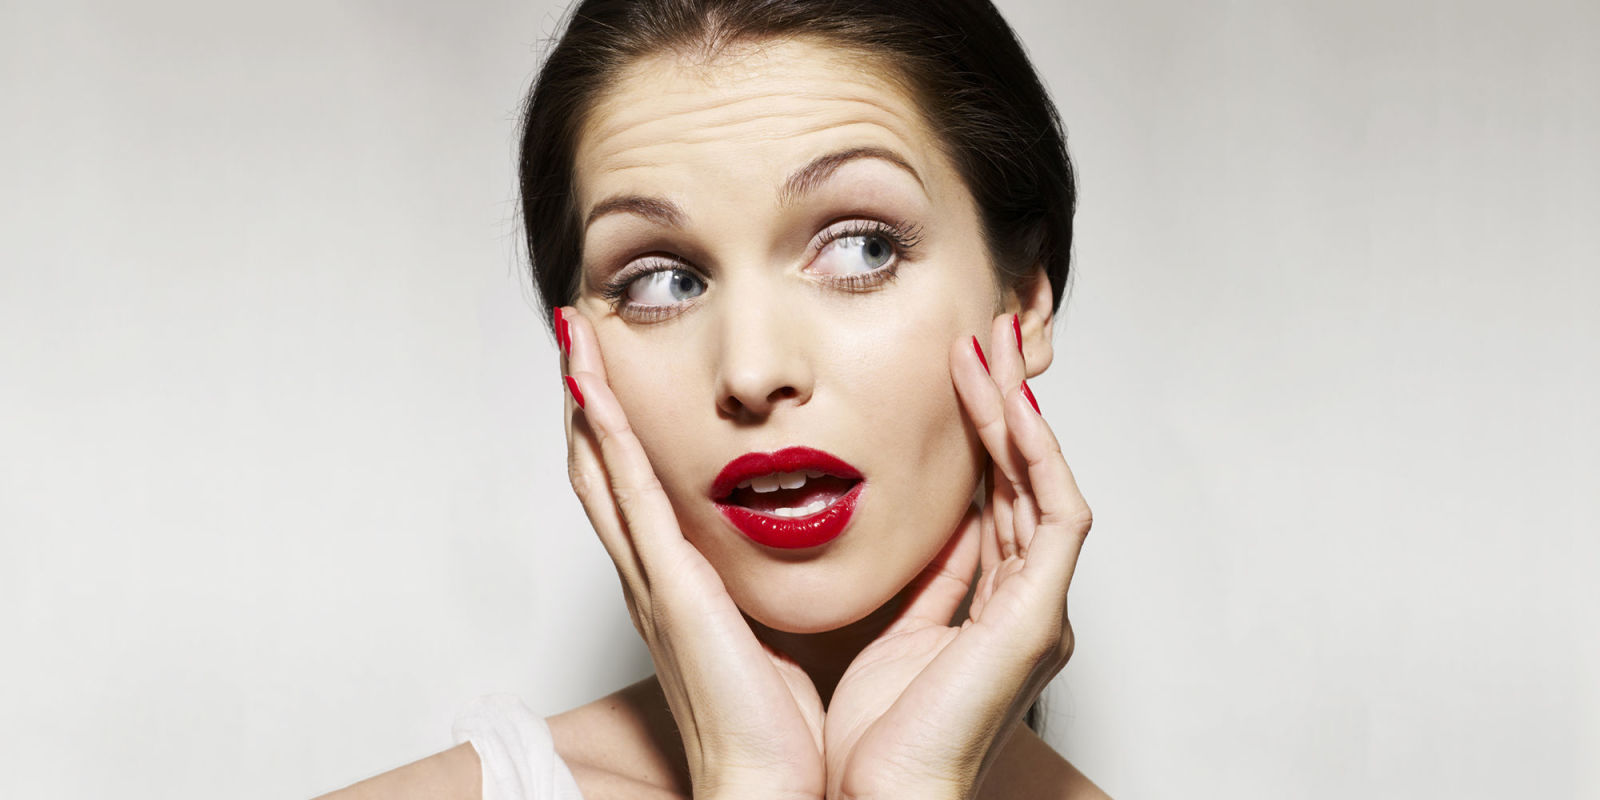 How To Prevent Wrinkles Anti Aging Tips For Young Women